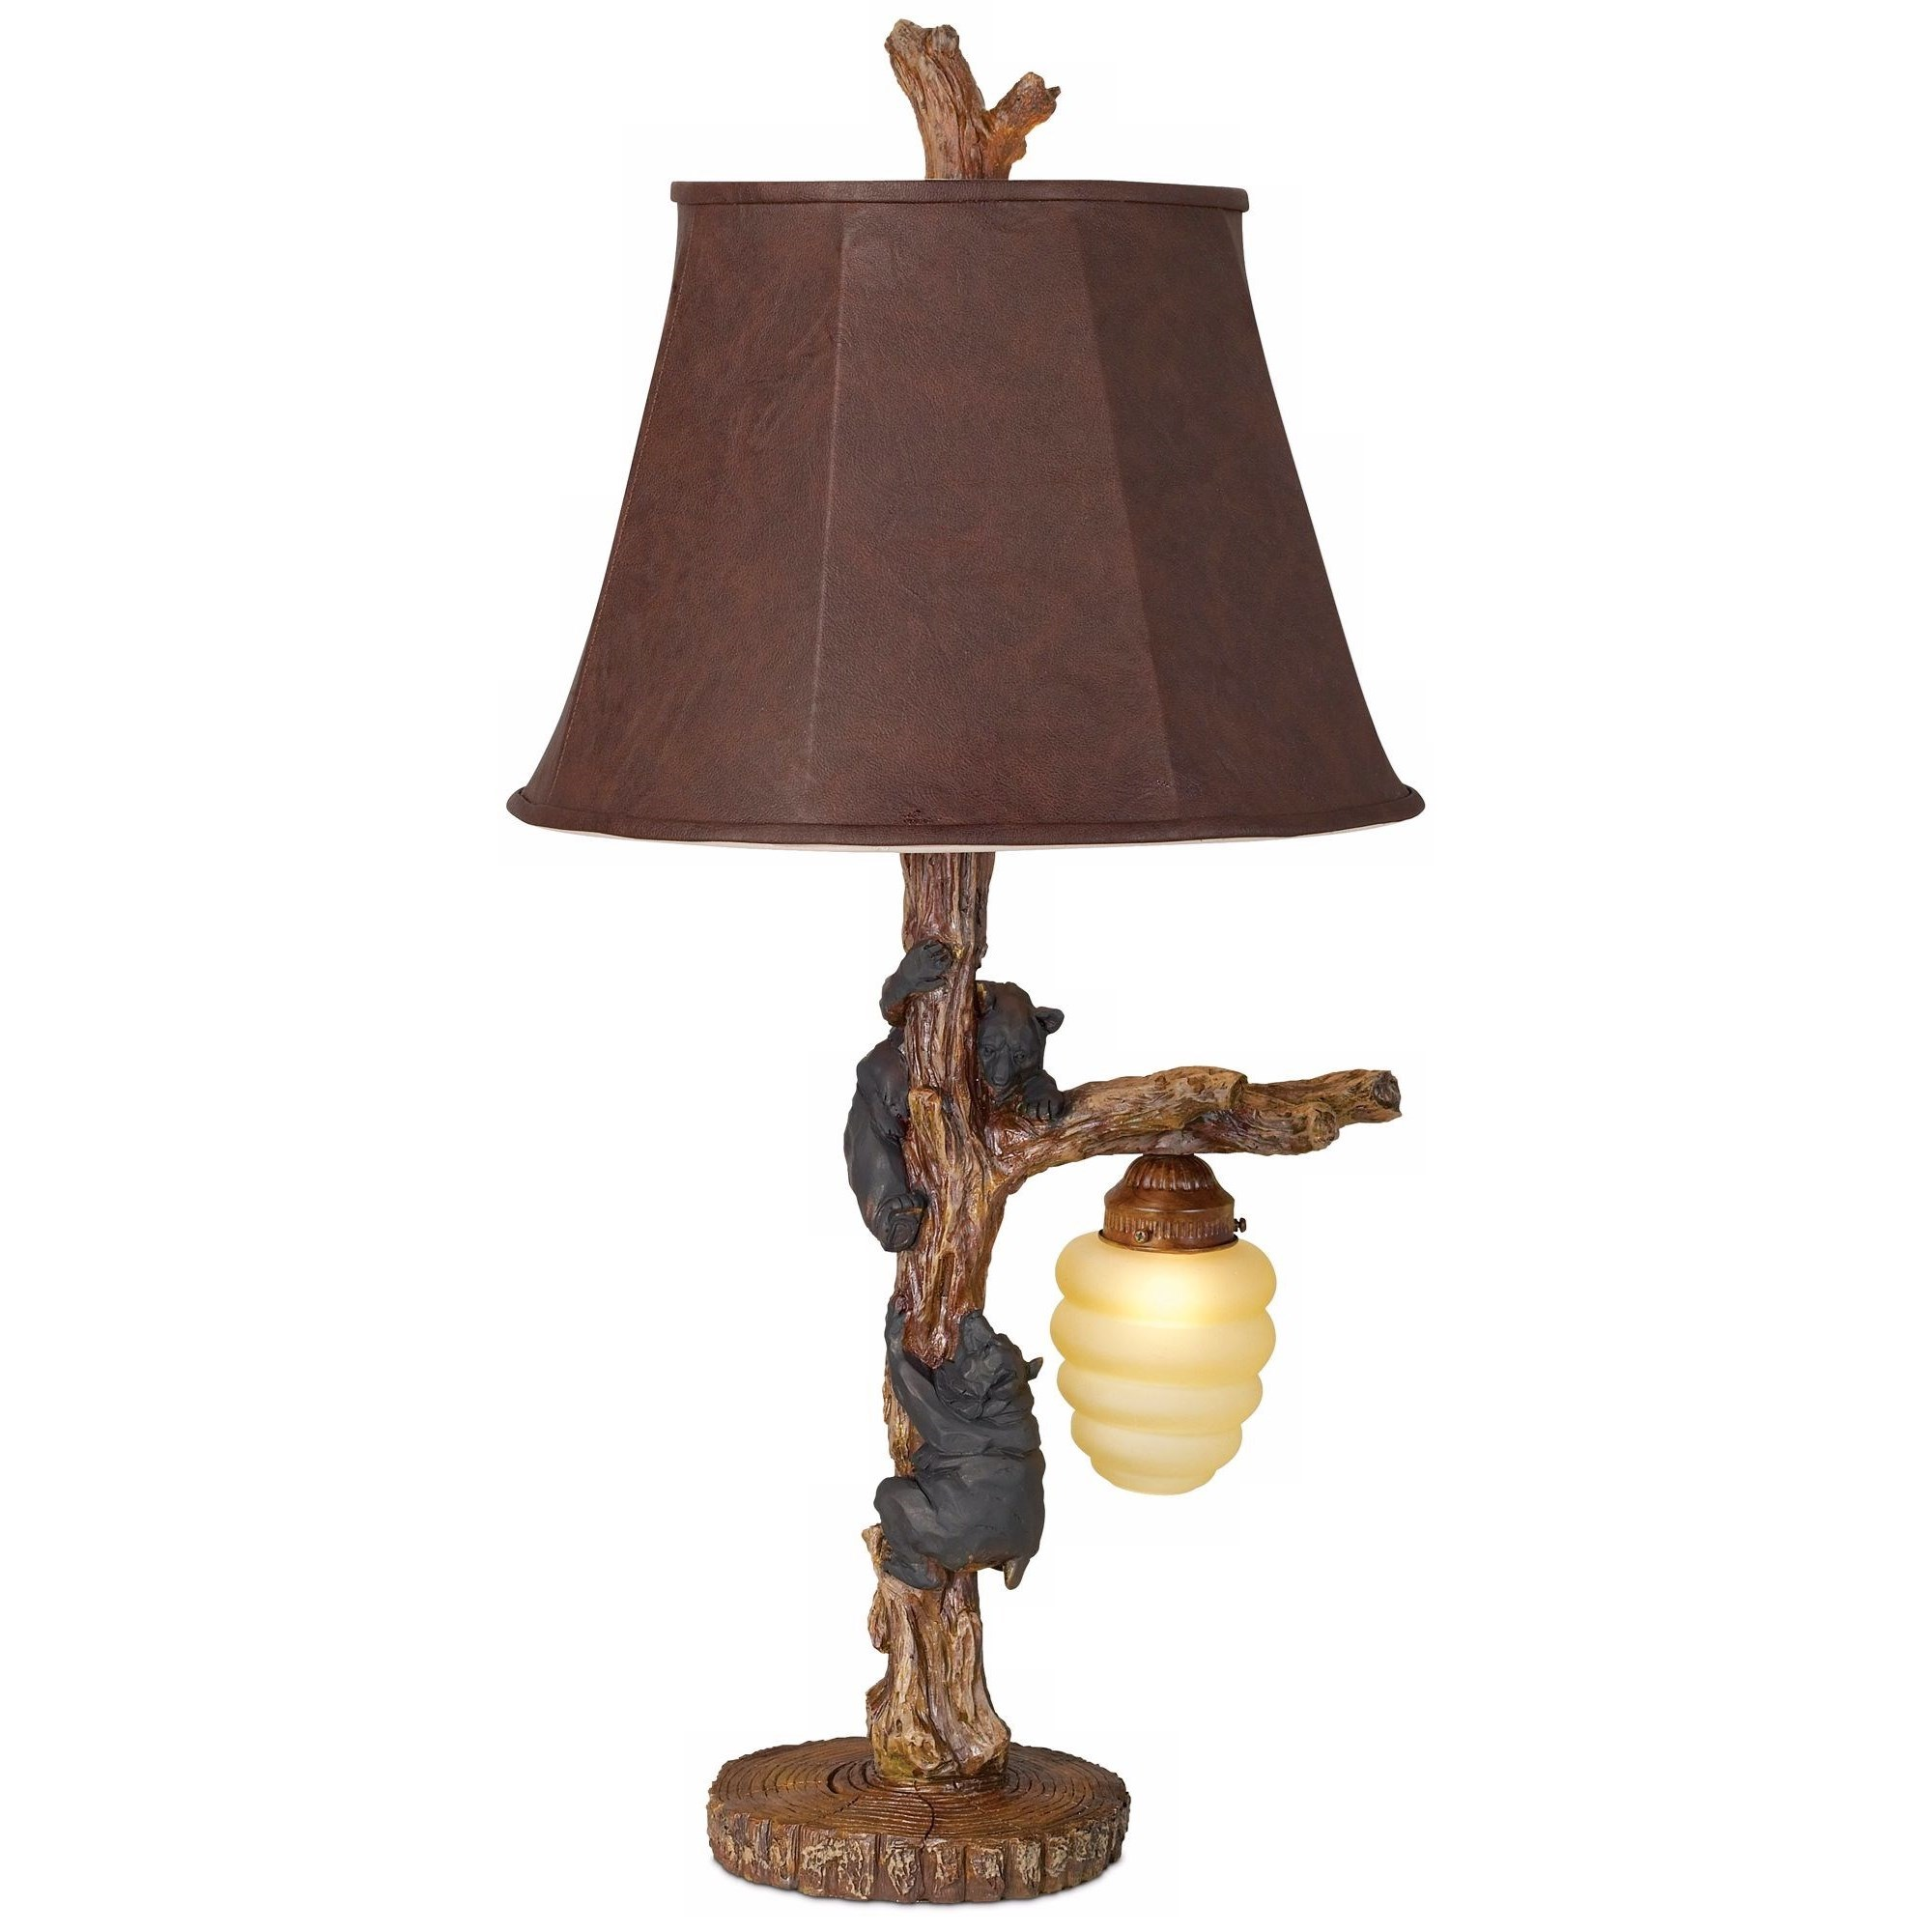 Table Lamps Honey Bear Table Lamp by Pacific Coast Lighting at Miller Waldrop Furniture and Decor